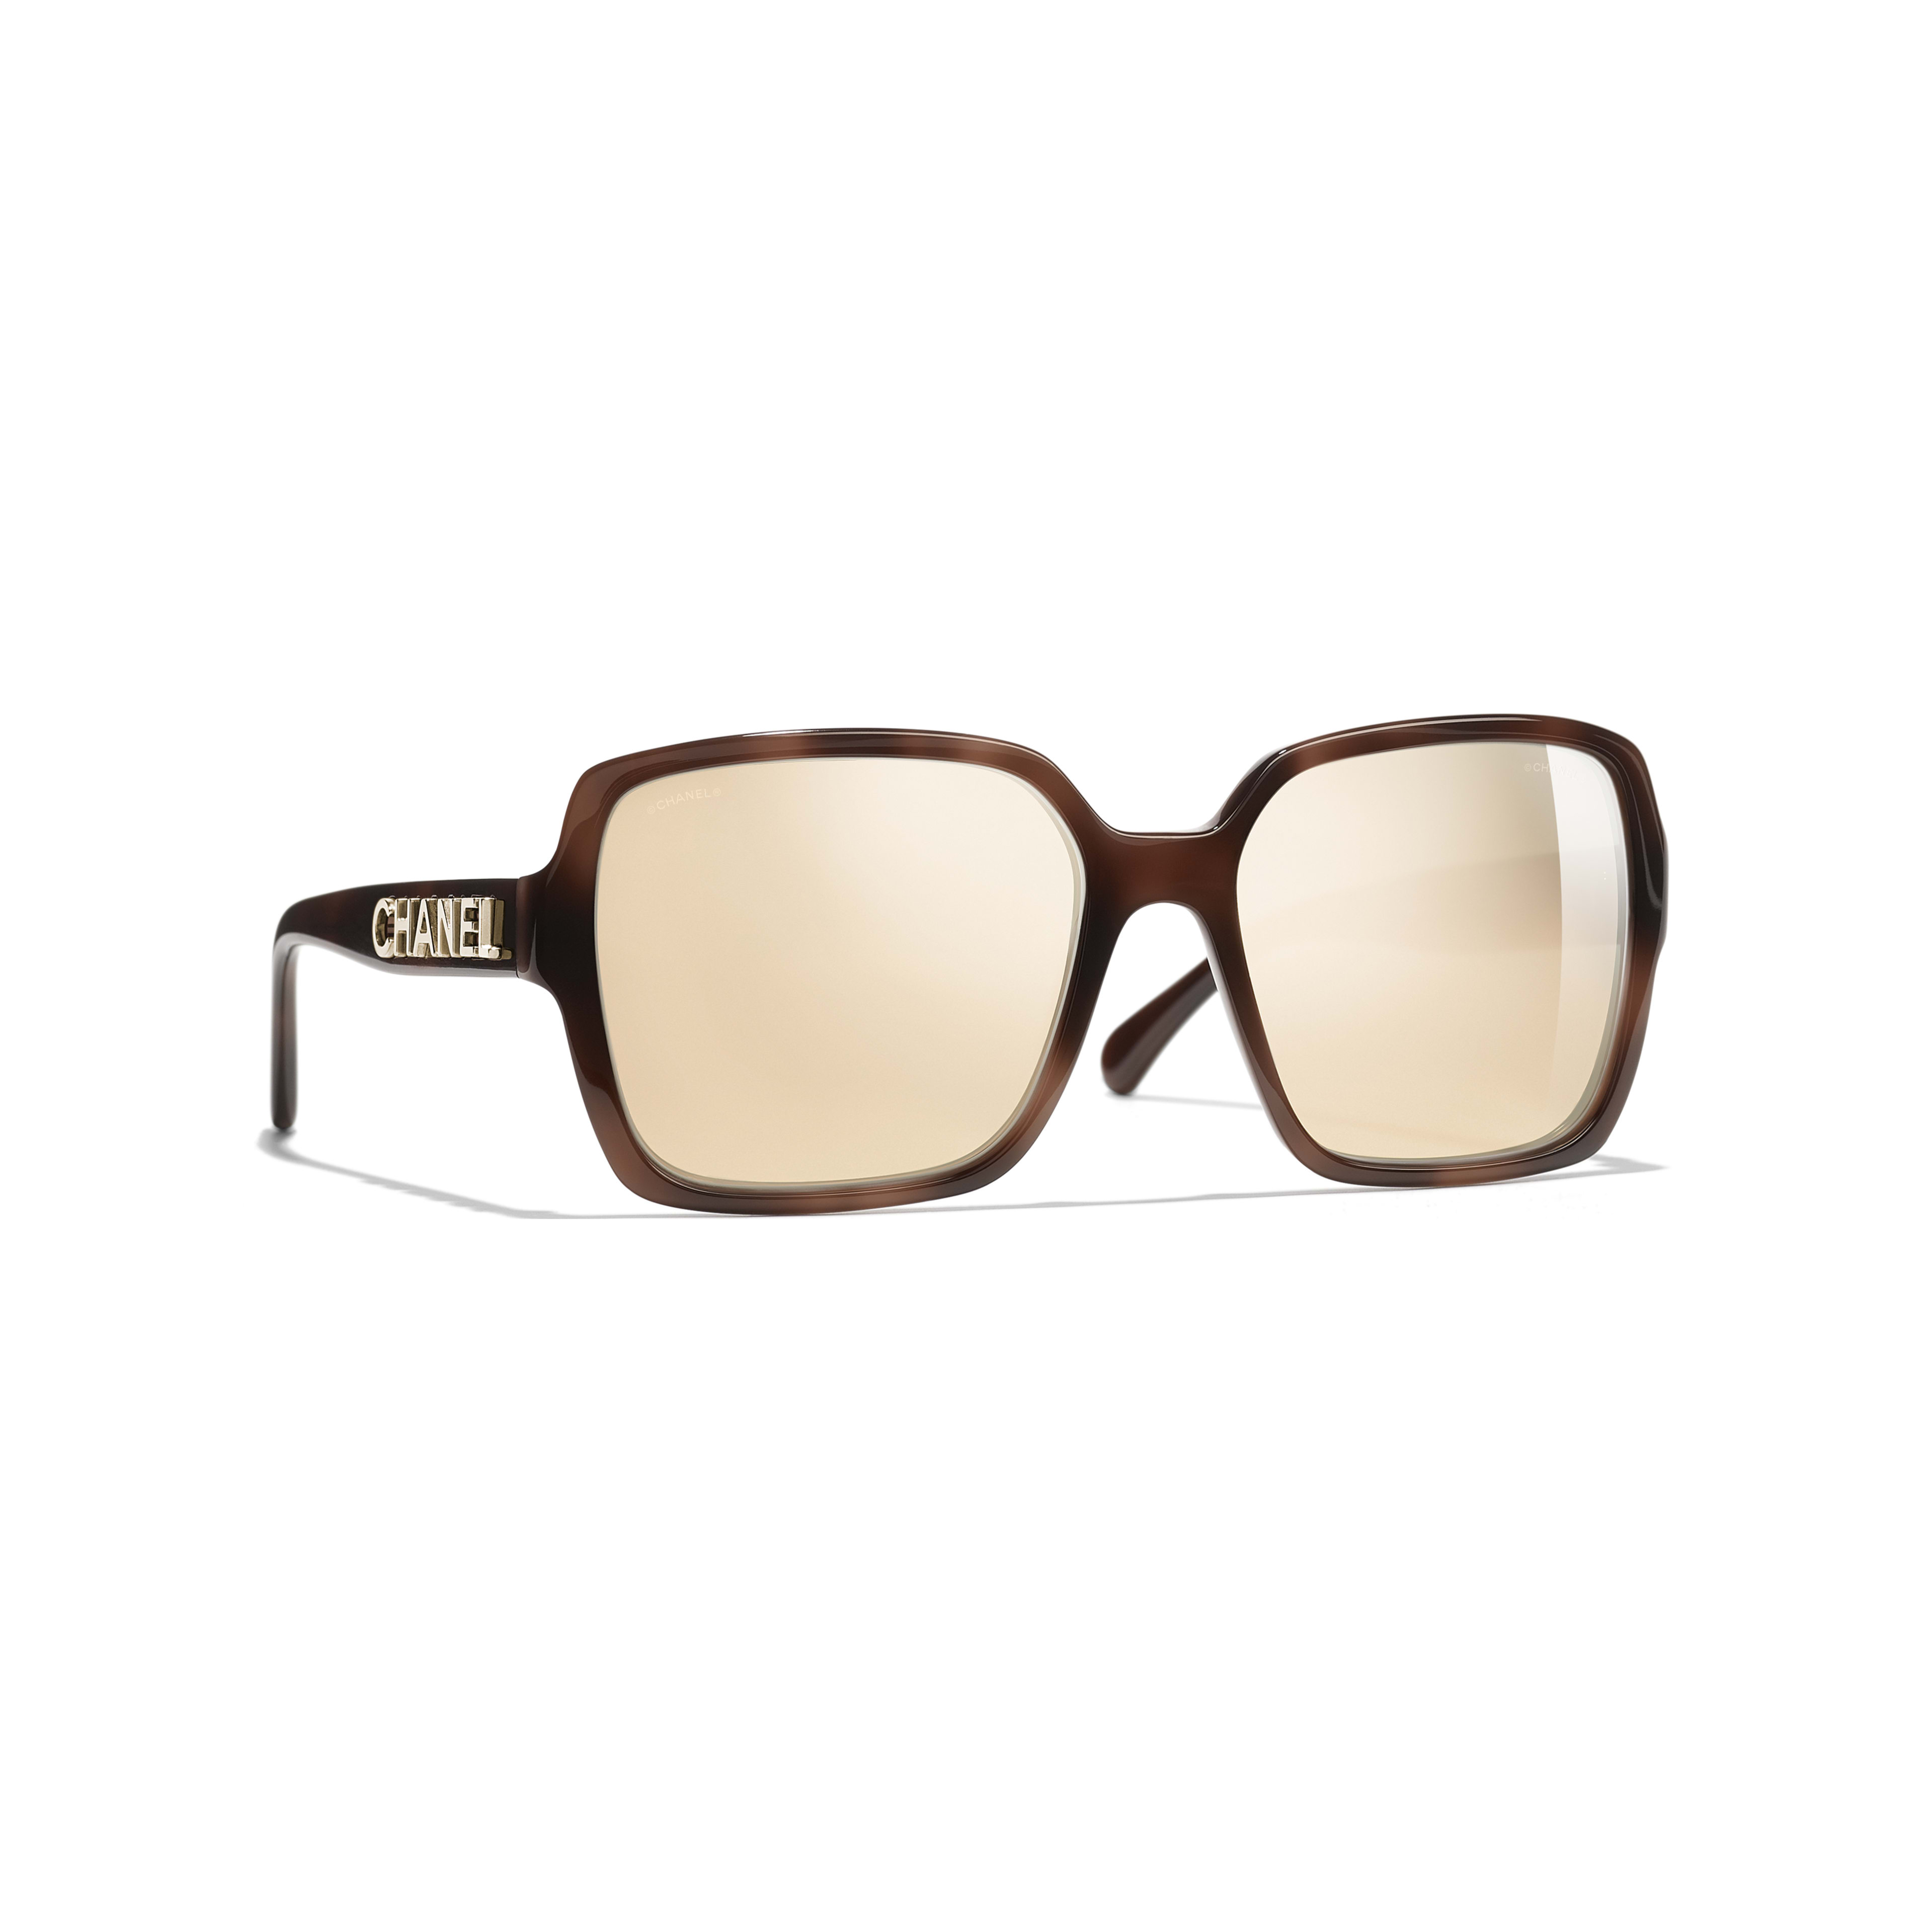 Square Sunglasses - Brown - Acetate - Default view - see standard sized version